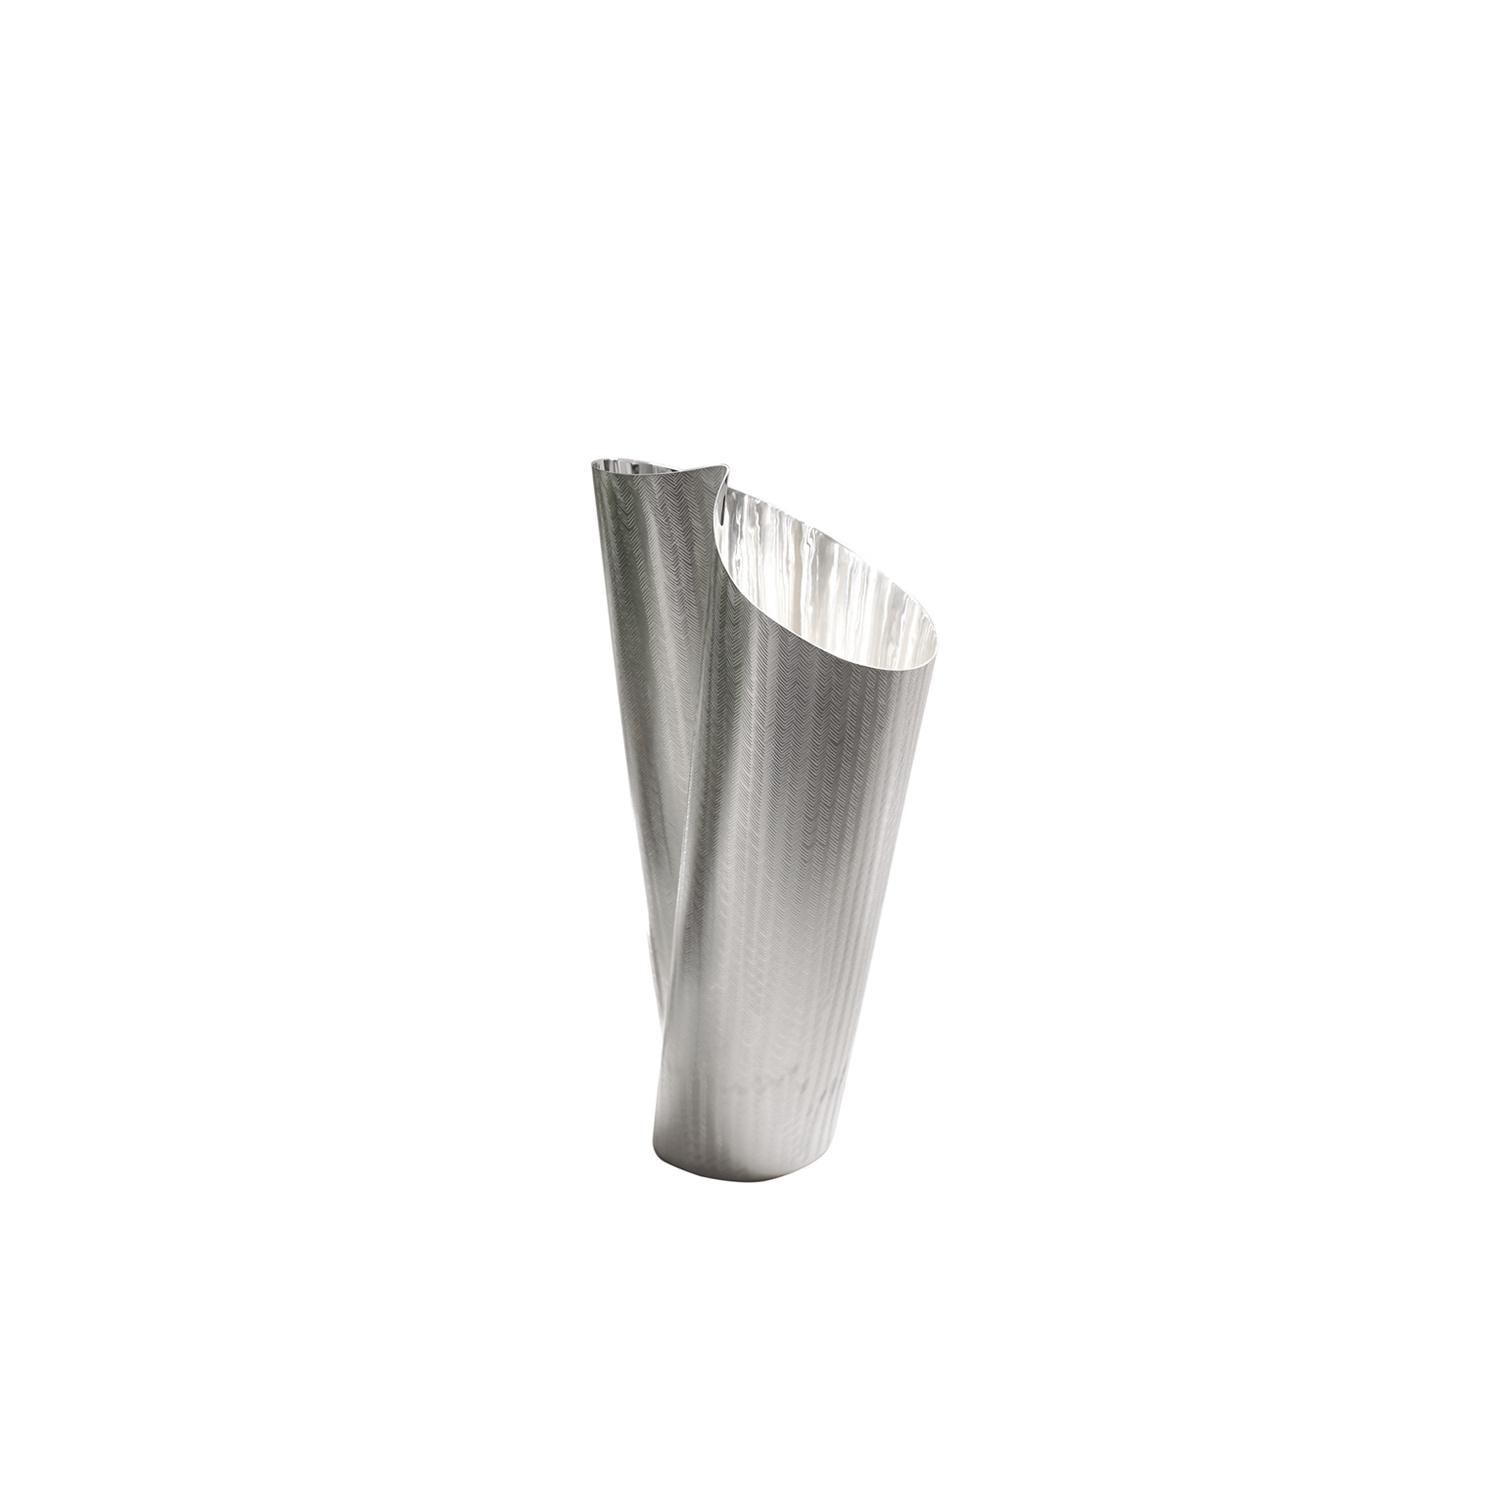 Tamada Vase - Refined vase crafted in a silver-plated alloy by the skilled silversmith Zanetto. The sensual forms of the vase are enticing. This item is also available in sterling silver upon request.